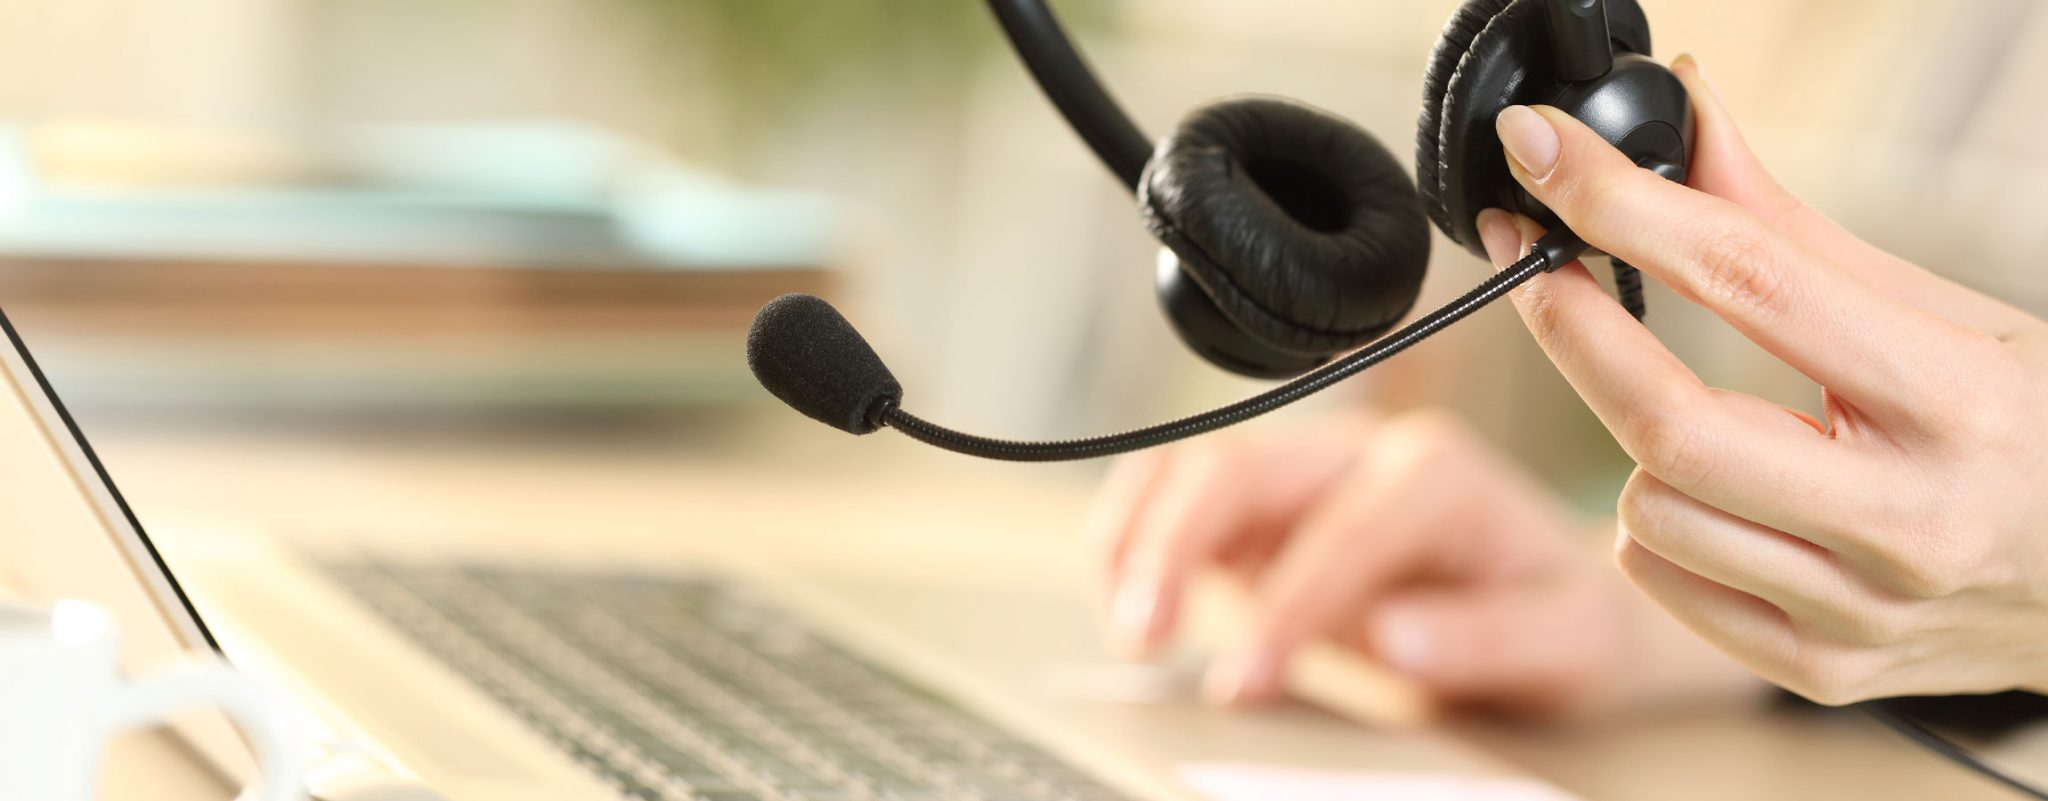 Open Access BPO Unveils New Onshore Staffing Model